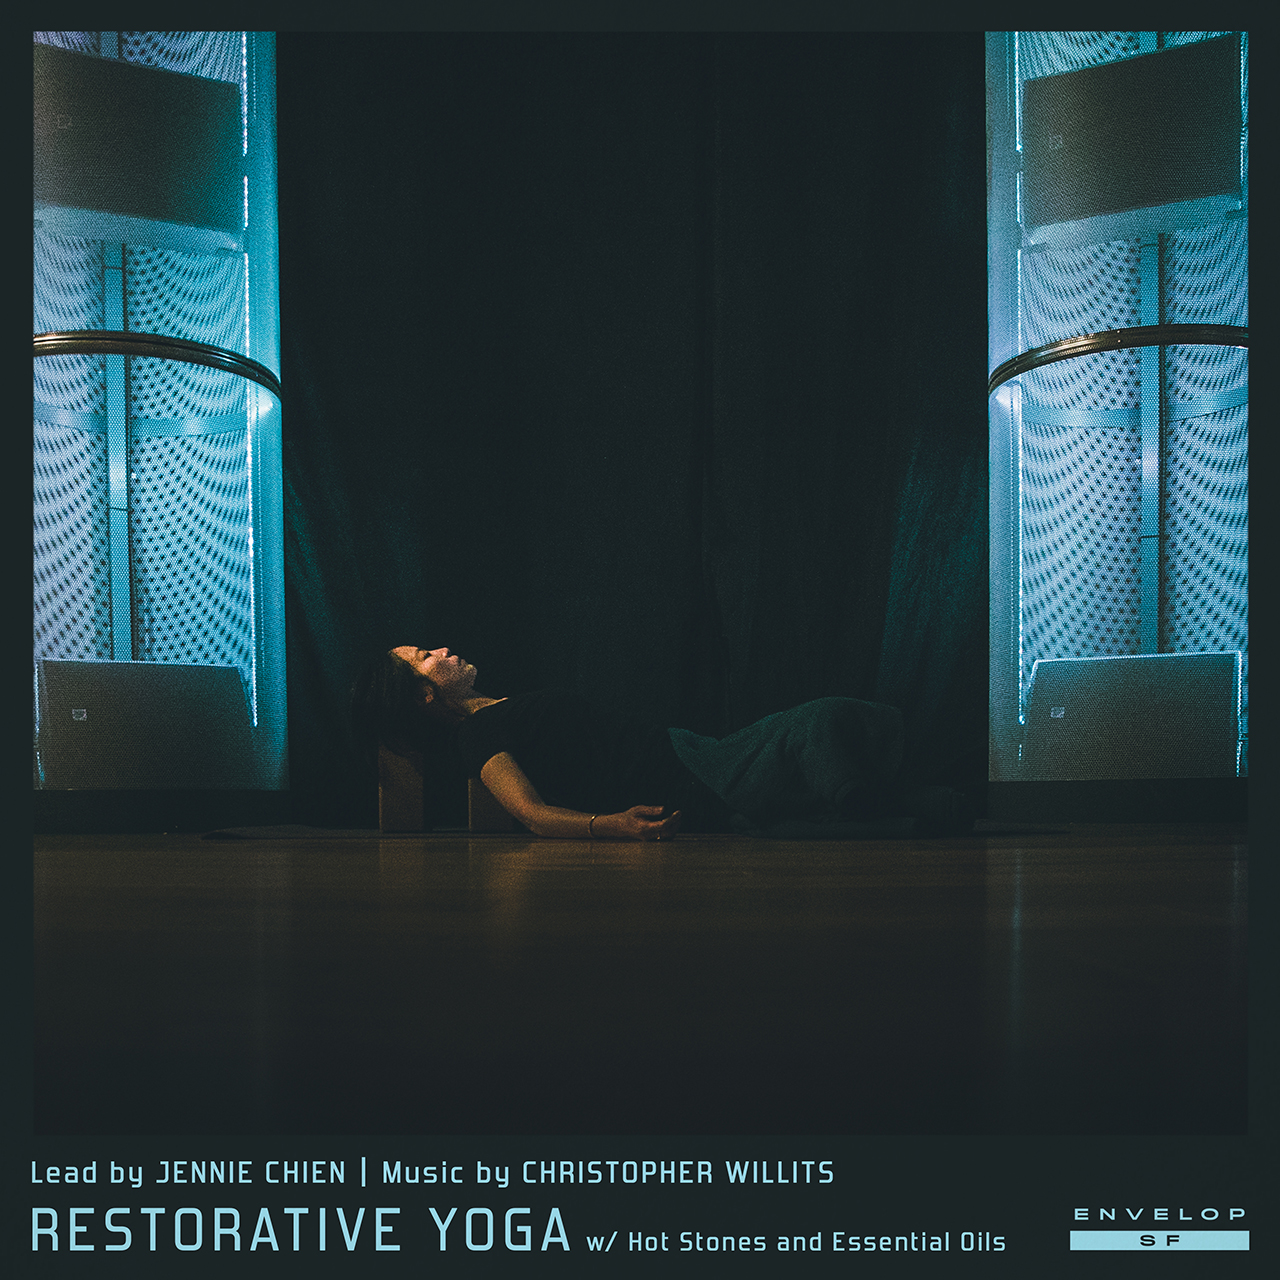 Envelop Restorative Yoga   Wed October 17, 2018 | At Envelop SF | 7:30 PM doors